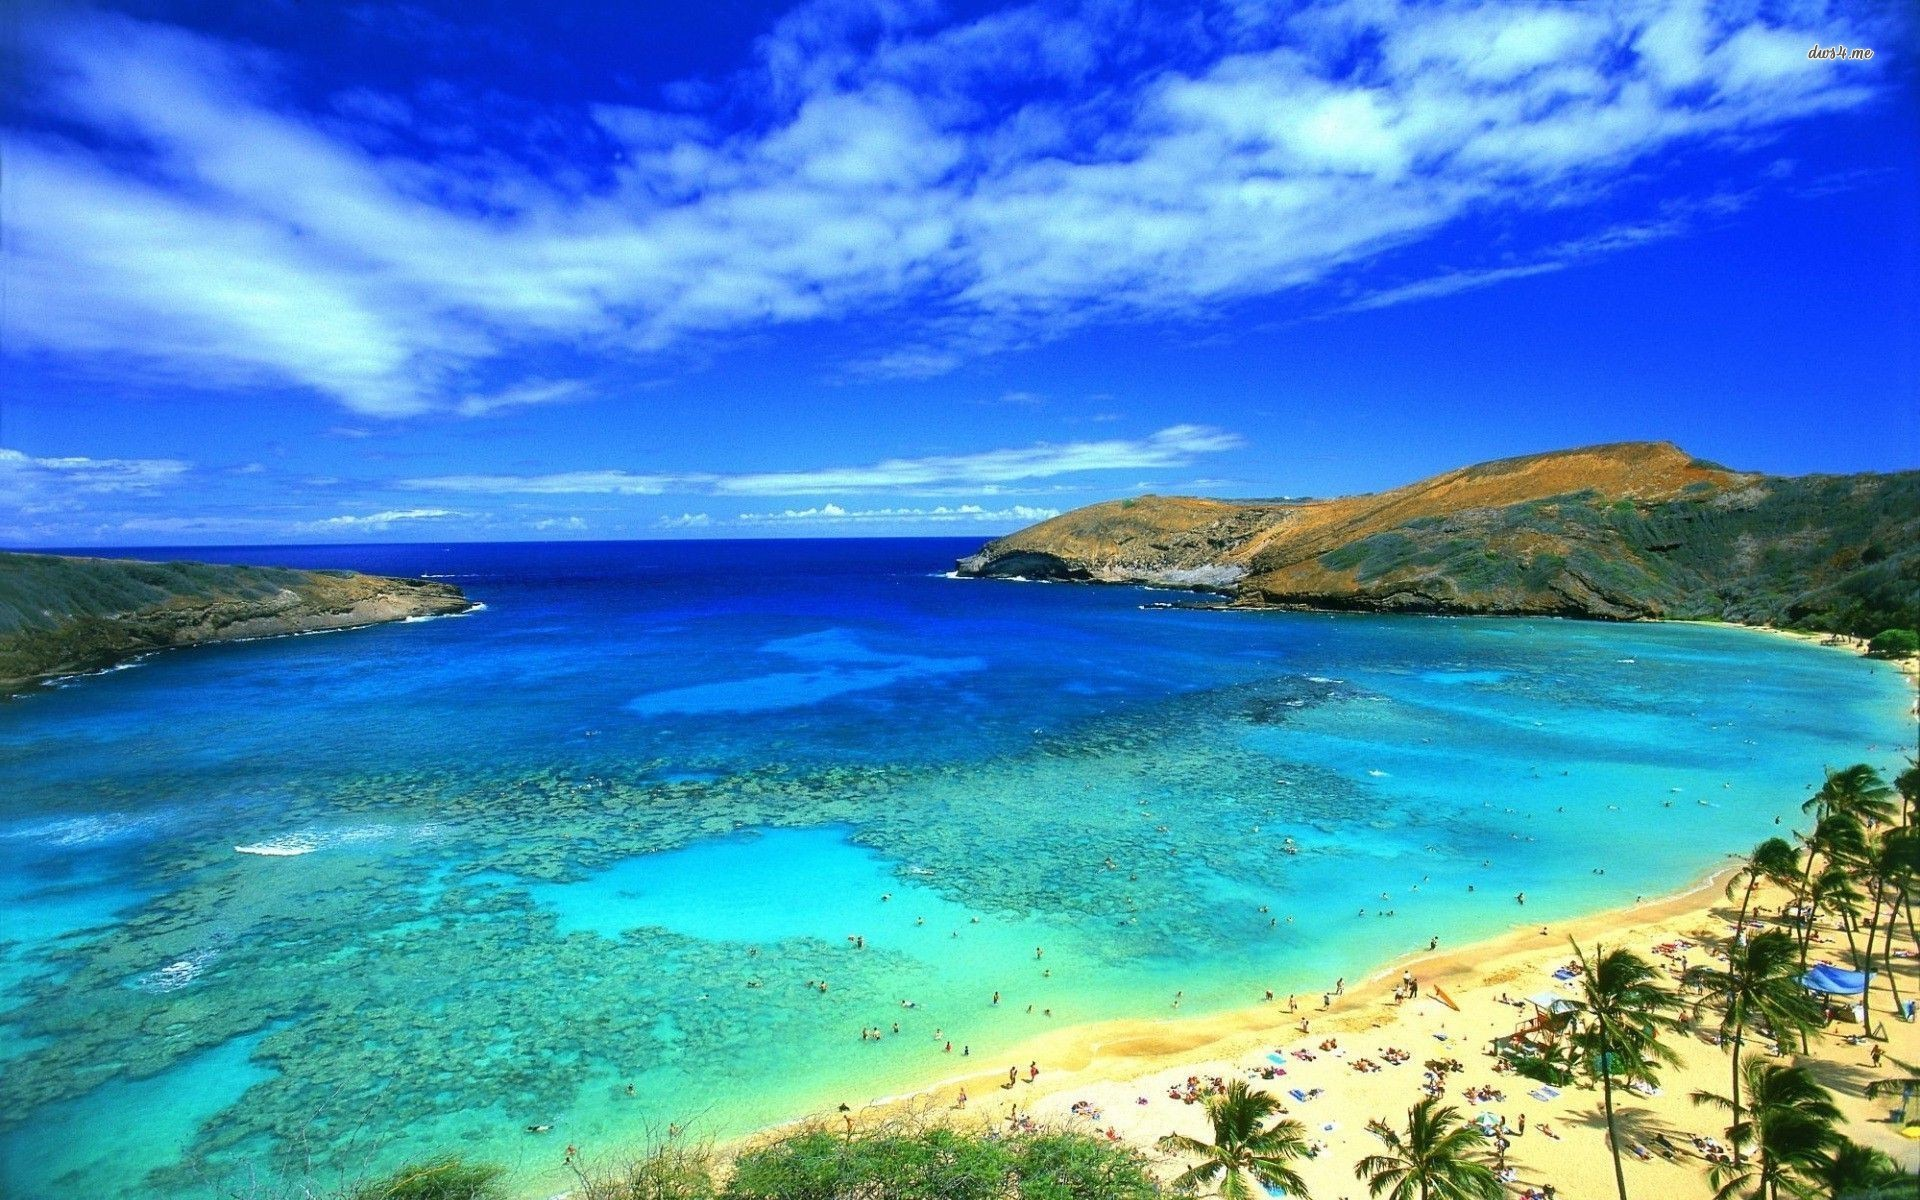 … Tag: 4K Ultra HD Hawaii Wallpapers, Backgrounds and Pictures for Free,  Delena Weese …